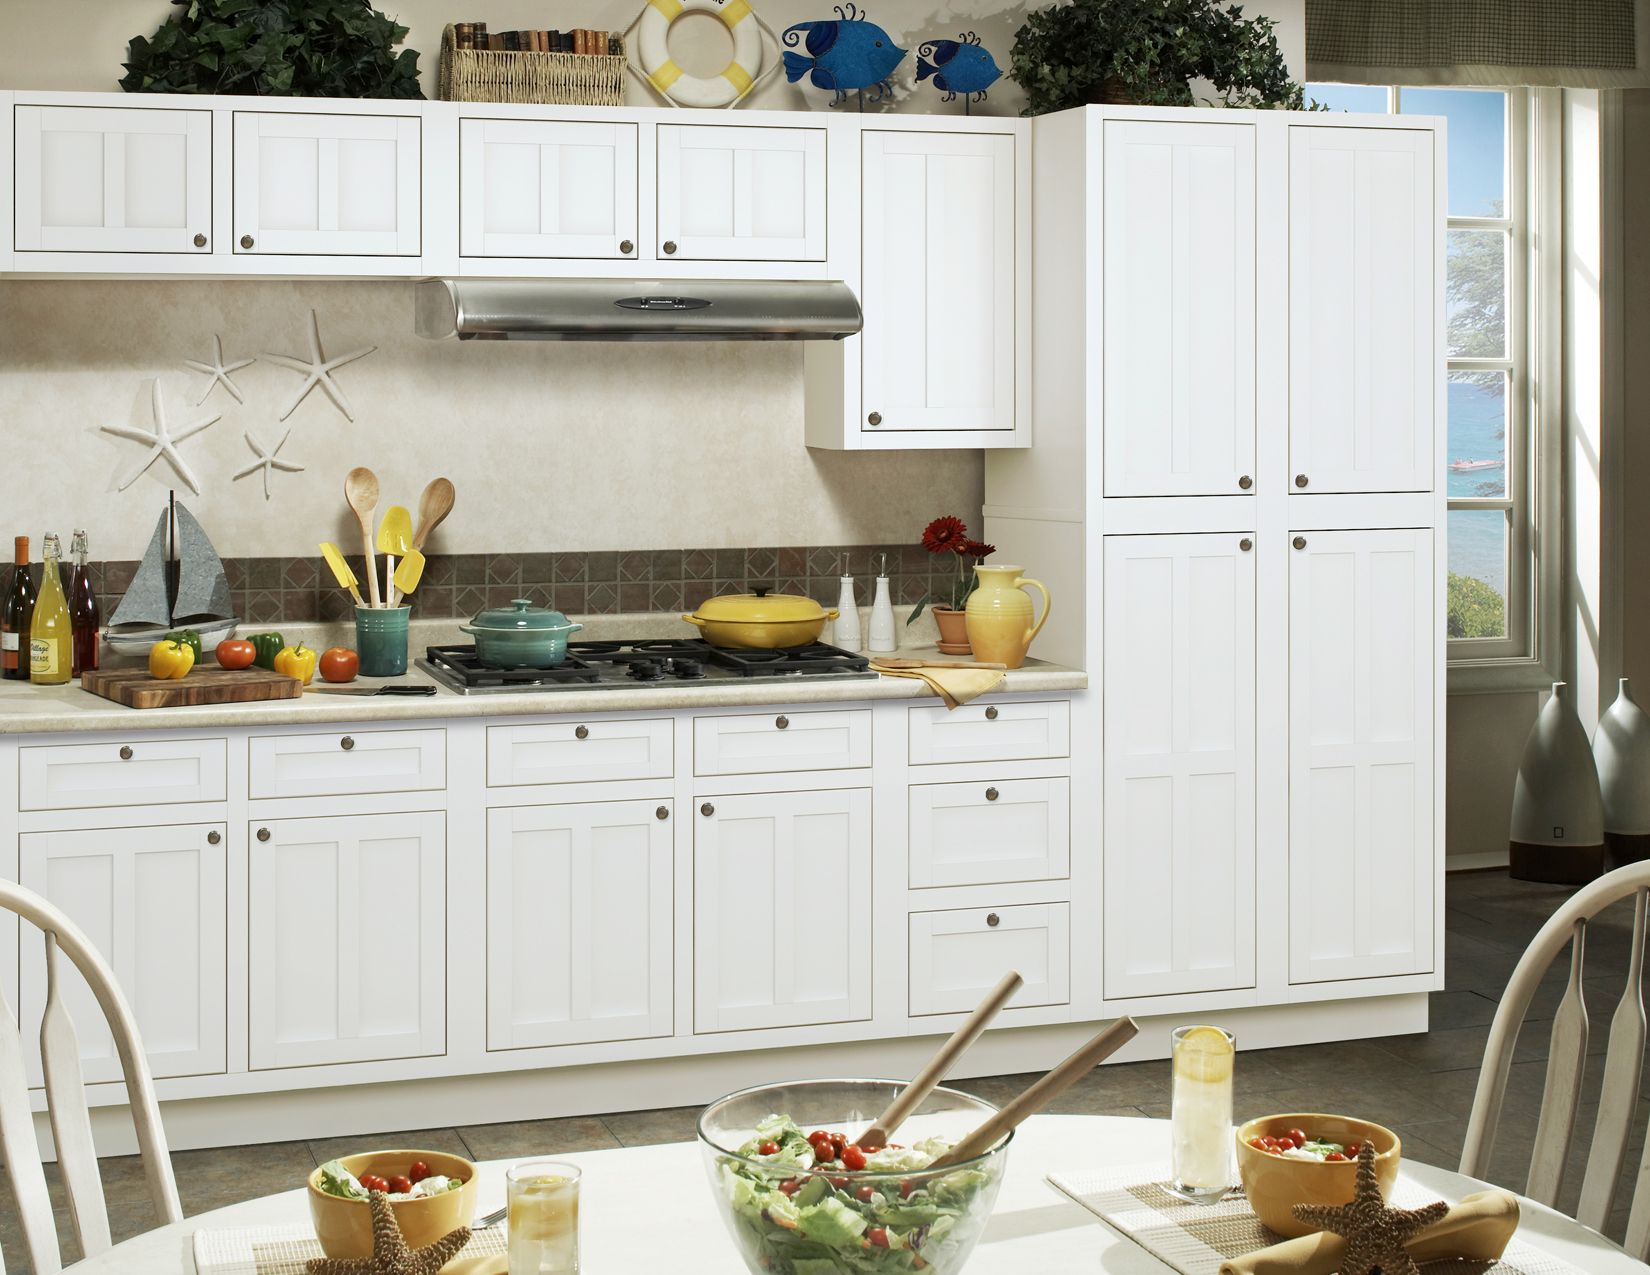 The Palmetto kitchen collection from Sunny Wood.  Find out more at www.sunnywood.biz.